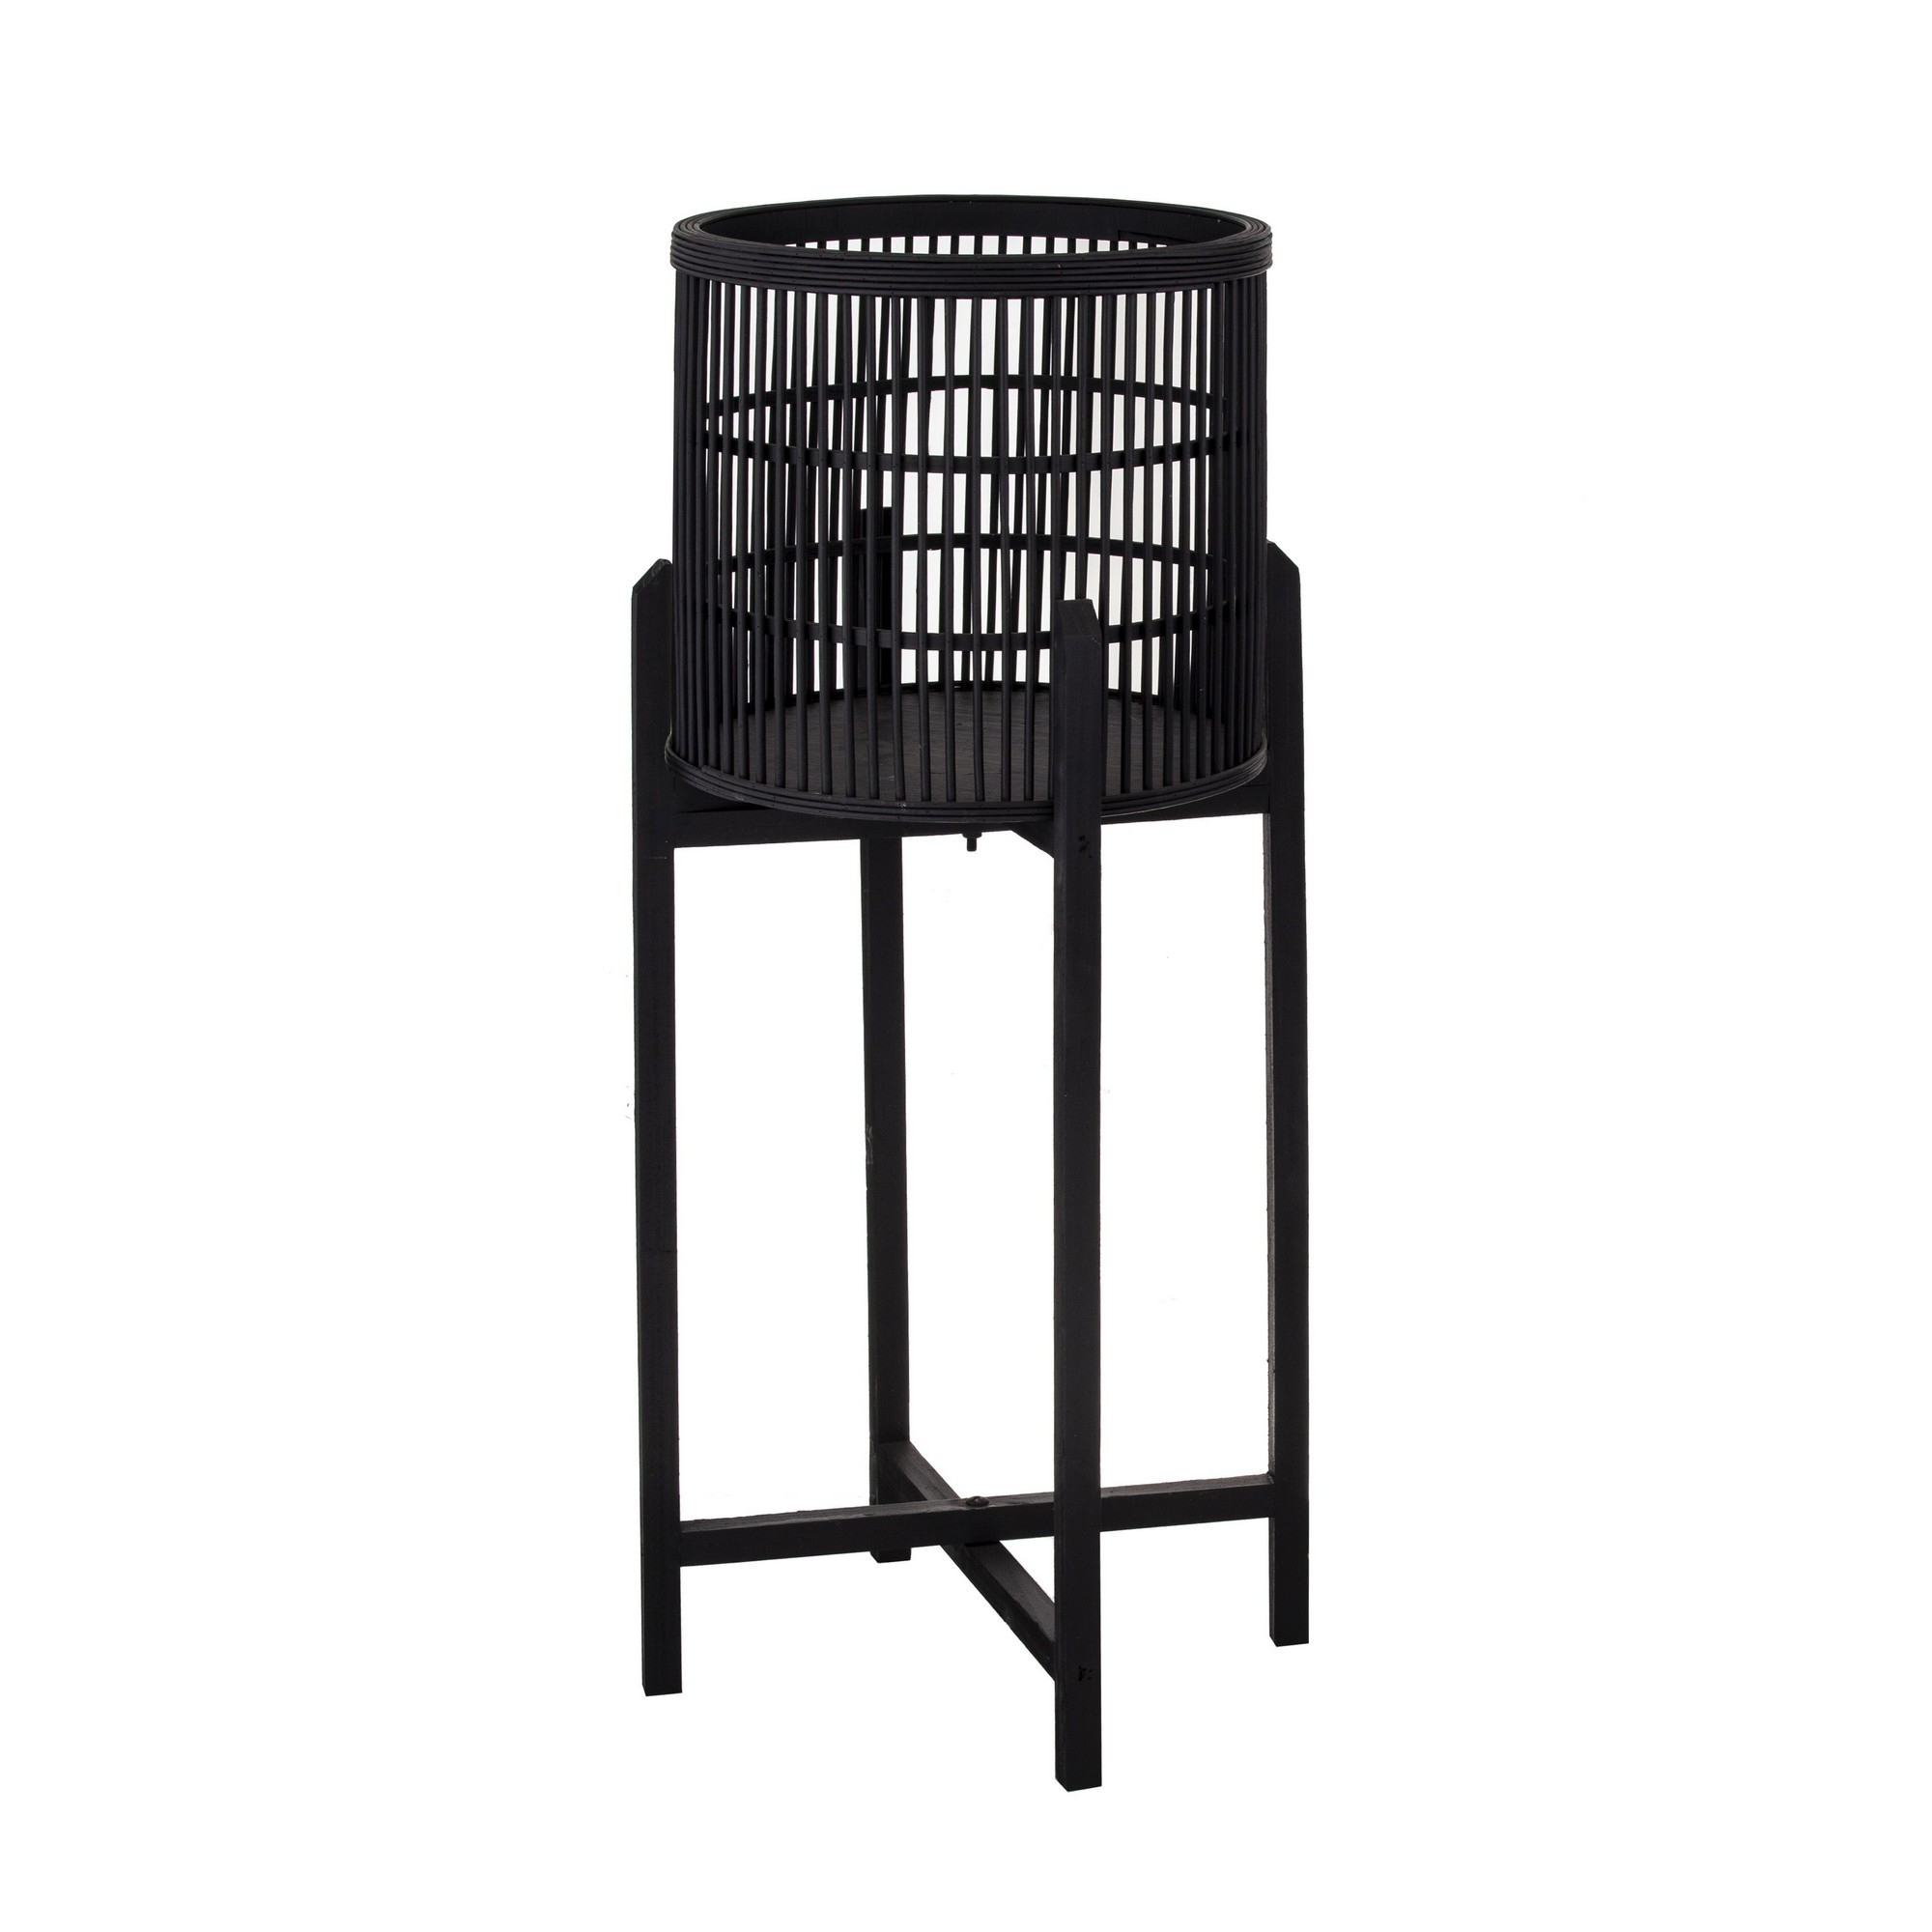 Fashionable Holbrook Bamboo Planter Stand, Large For Holbrook Ceramic Garden Stools (View 15 of 30)